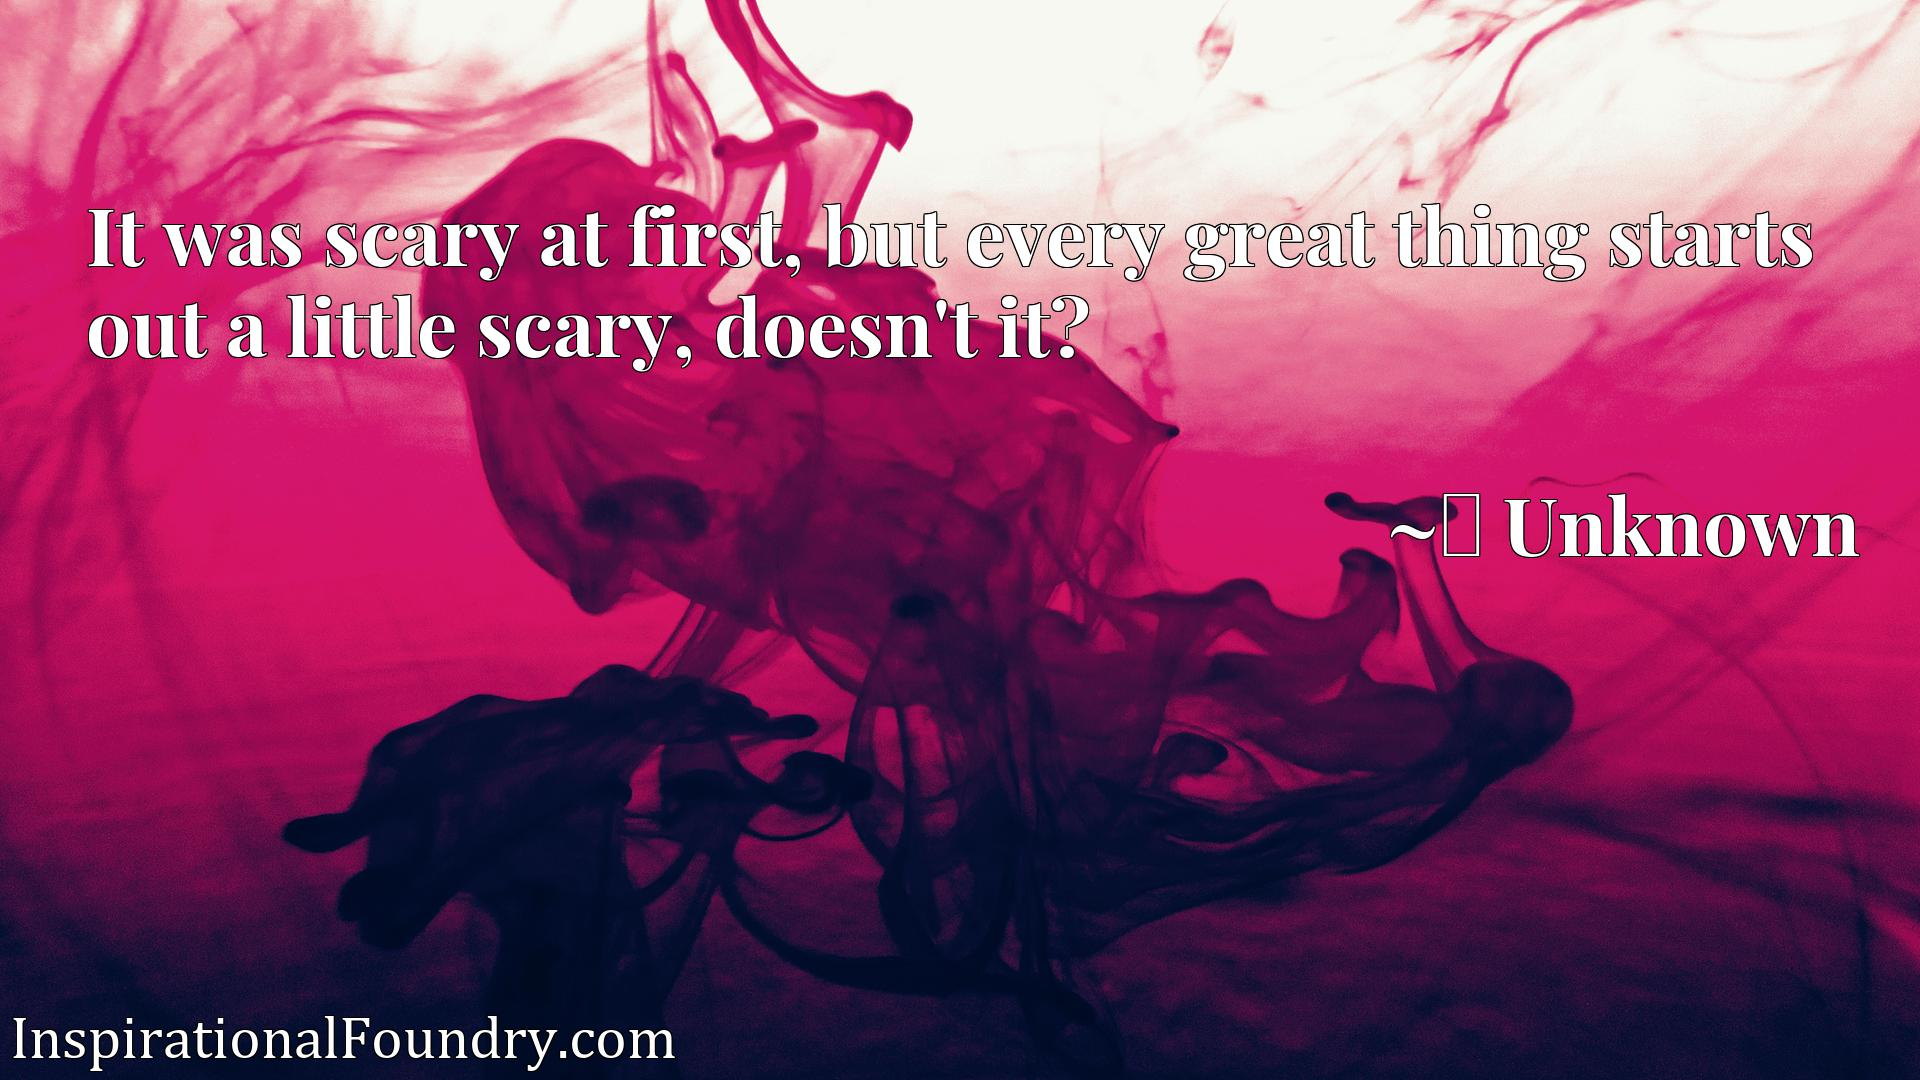 It was scary at first, but every great thing starts out a little scary, doesn't it?